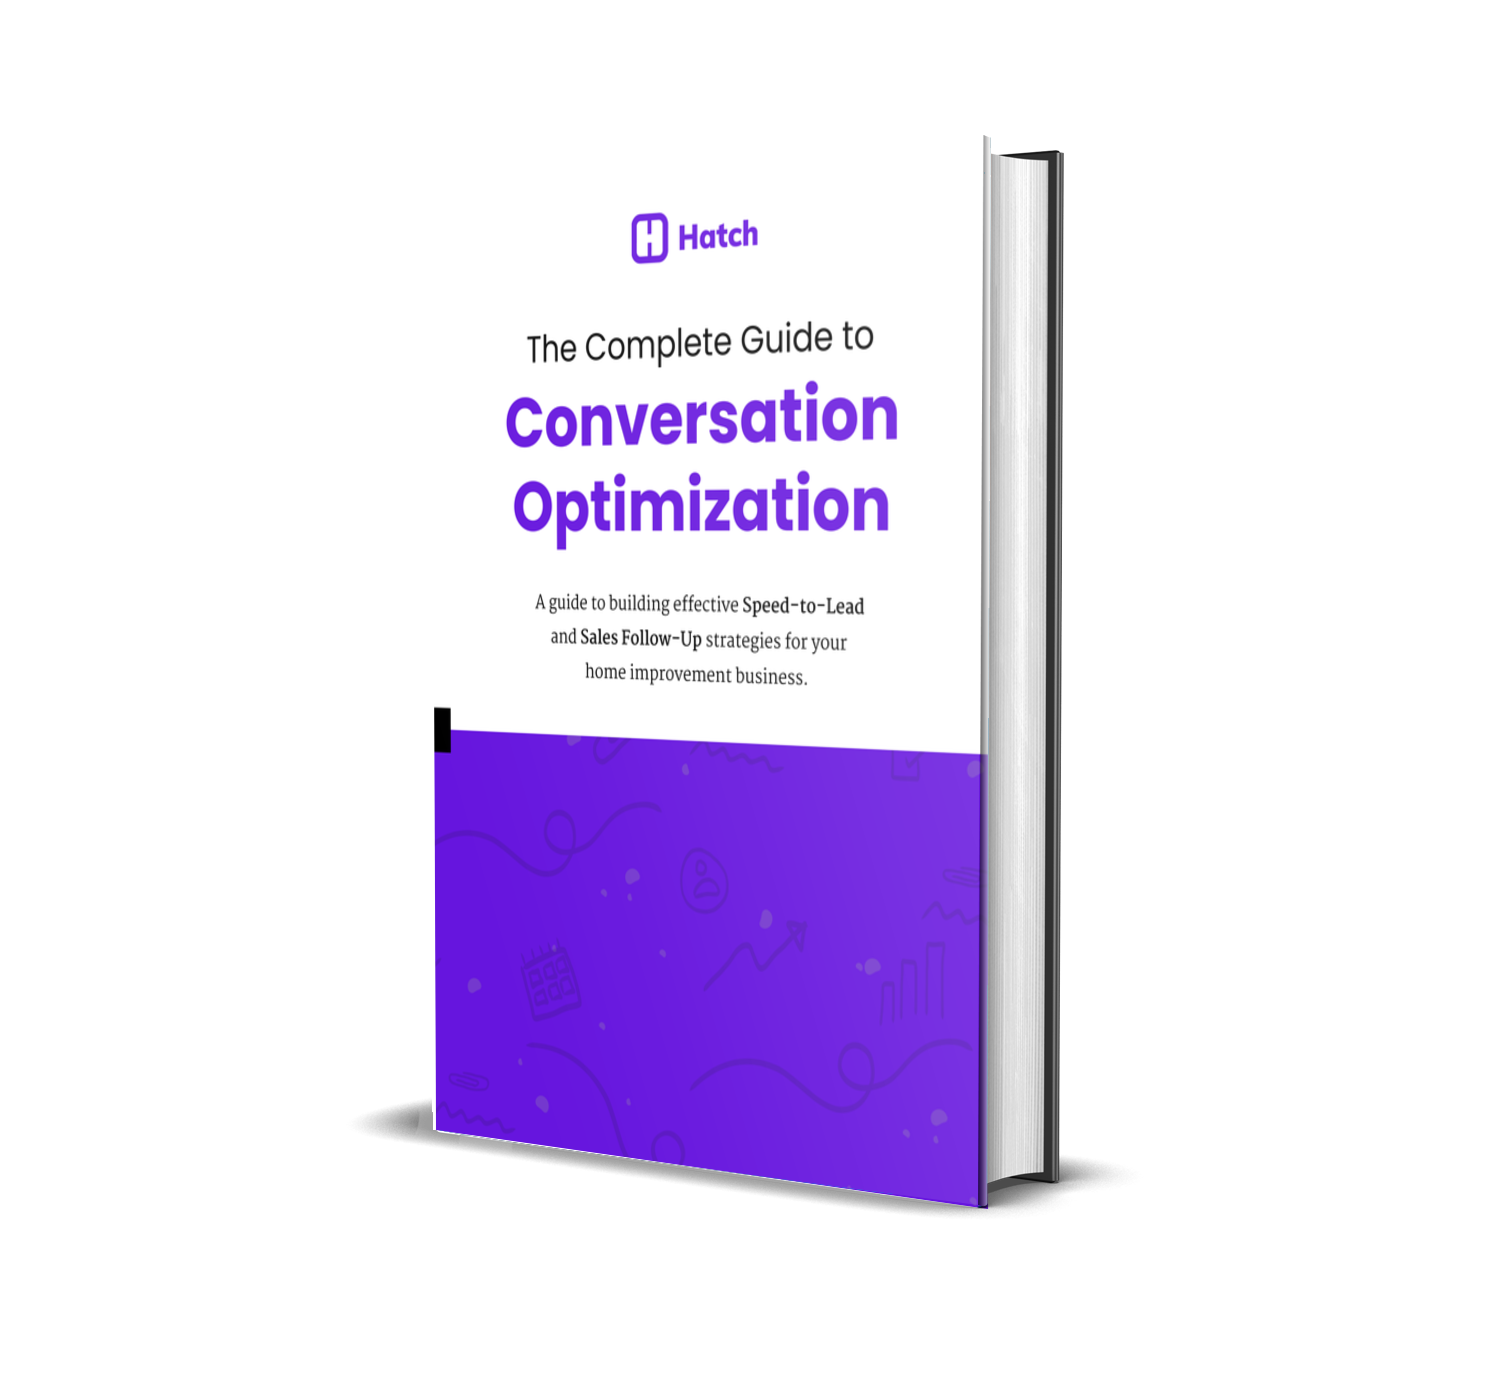 Complete Guide to Conversation Optimization